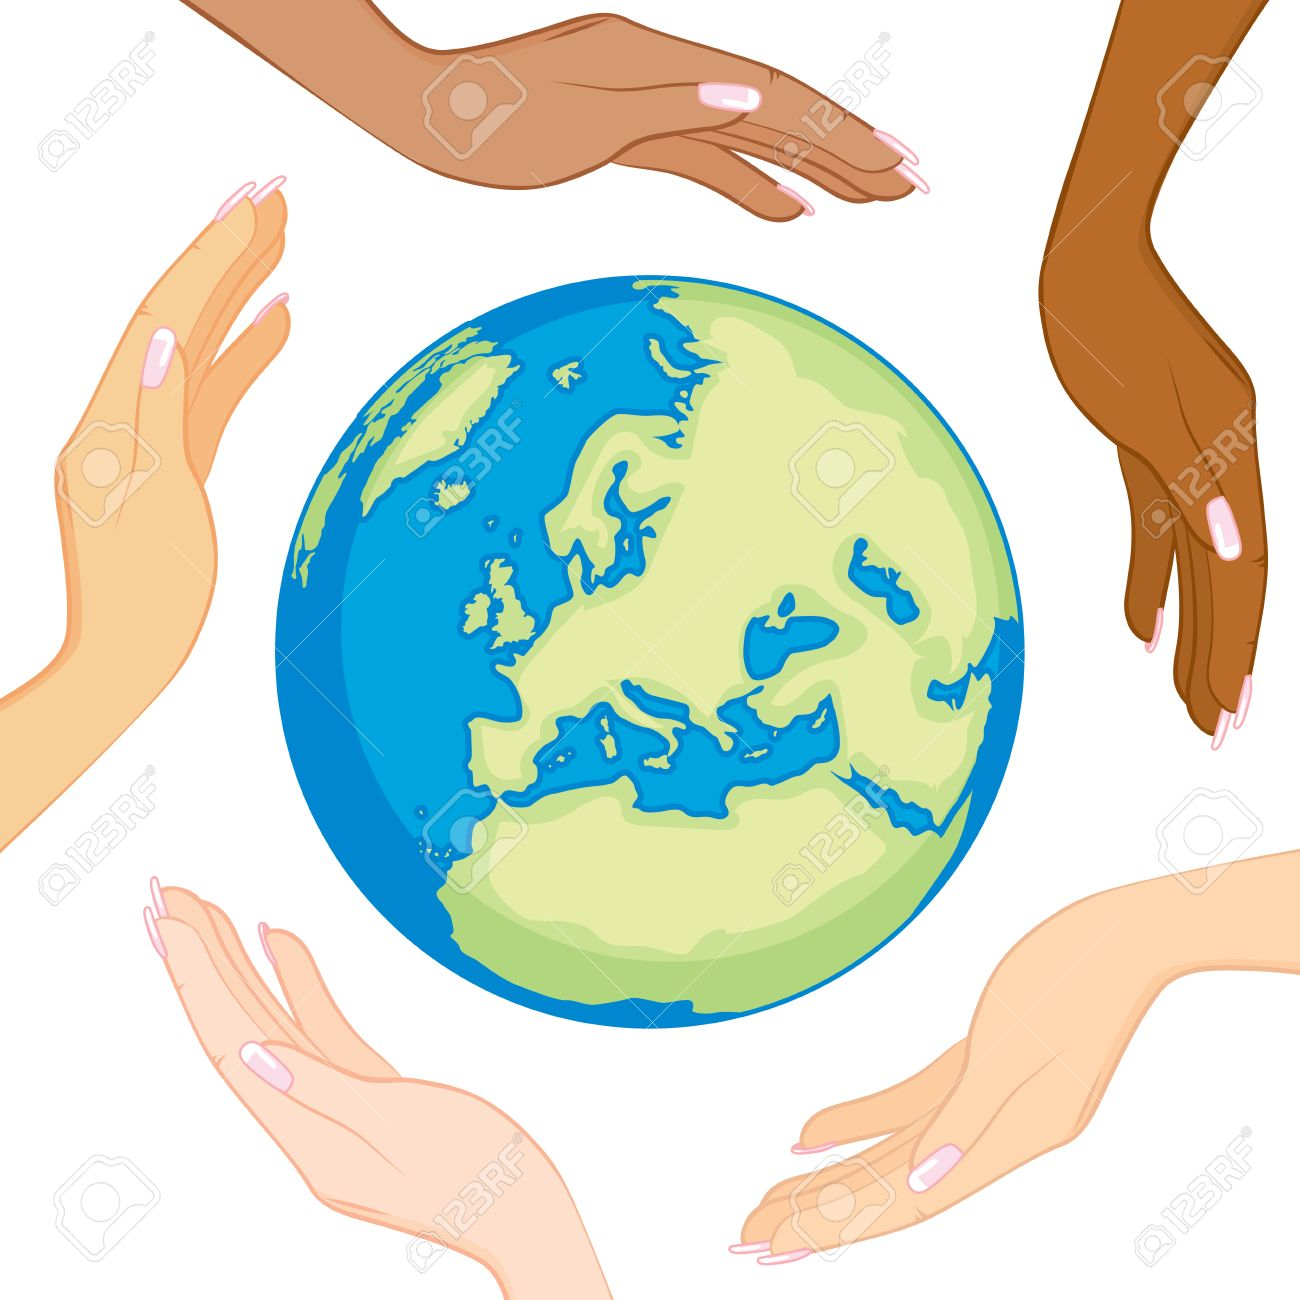 Ecology concept of beautiful diverse women hands surrounding and holding earth in the center - 57839520